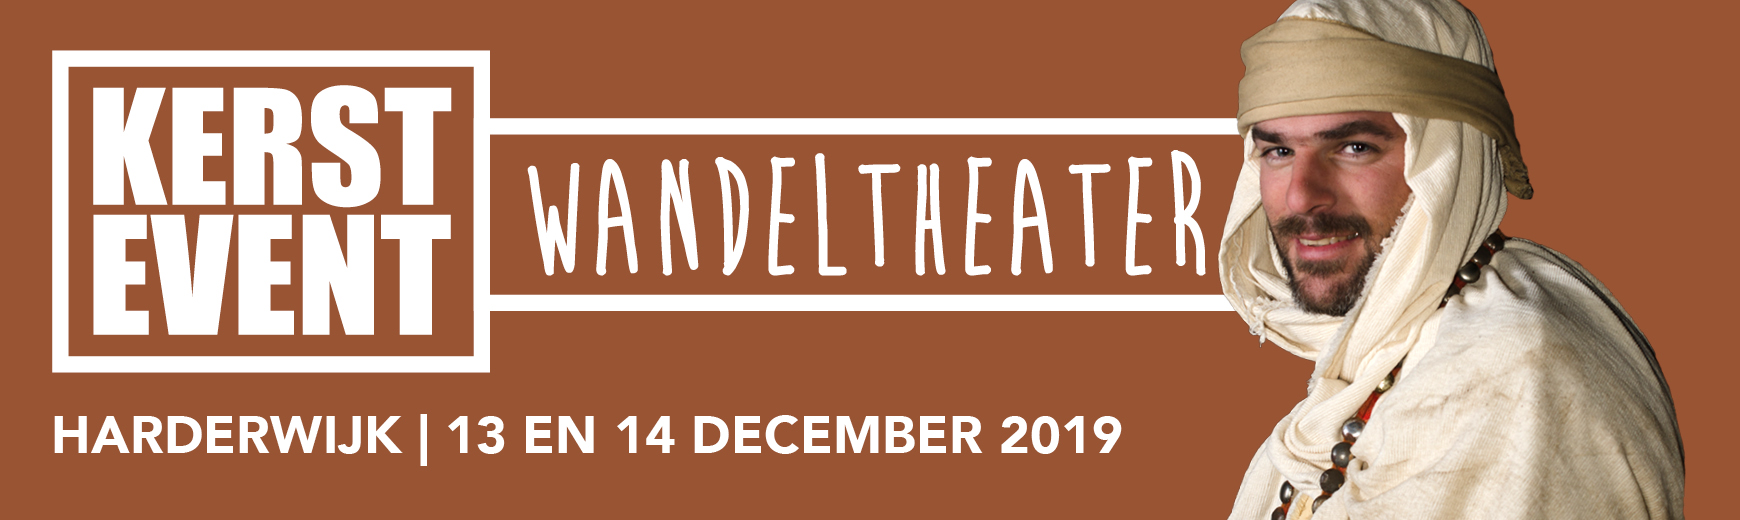 Kerstevent Wandeltheater